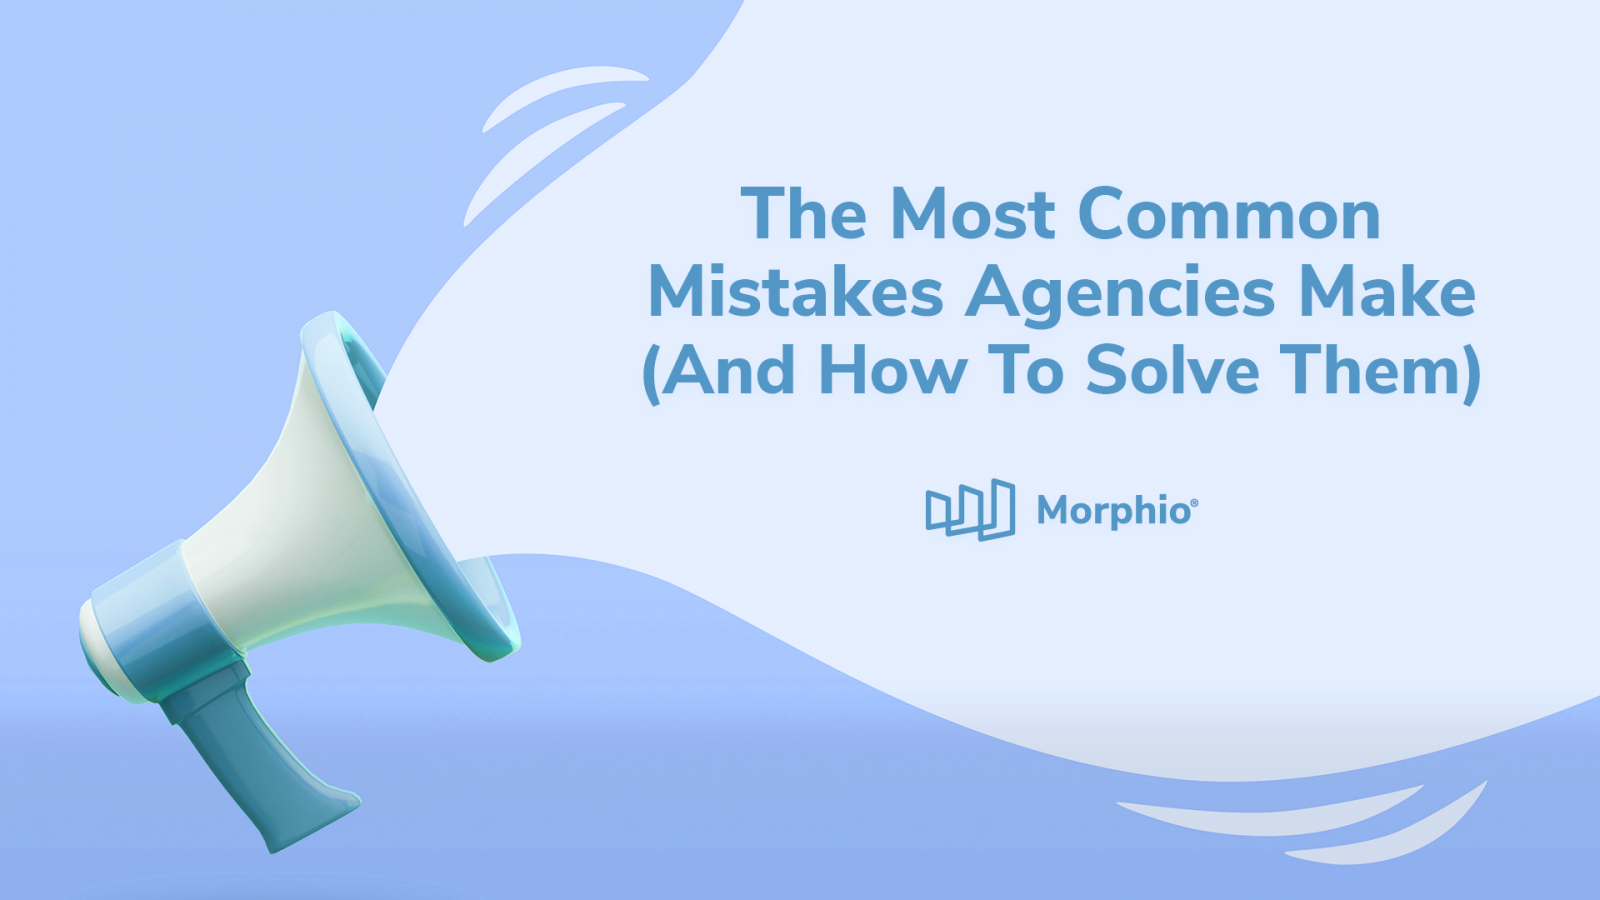 The Most Common Mistakes Agencies Make (And How To Solve Them) Featured Image